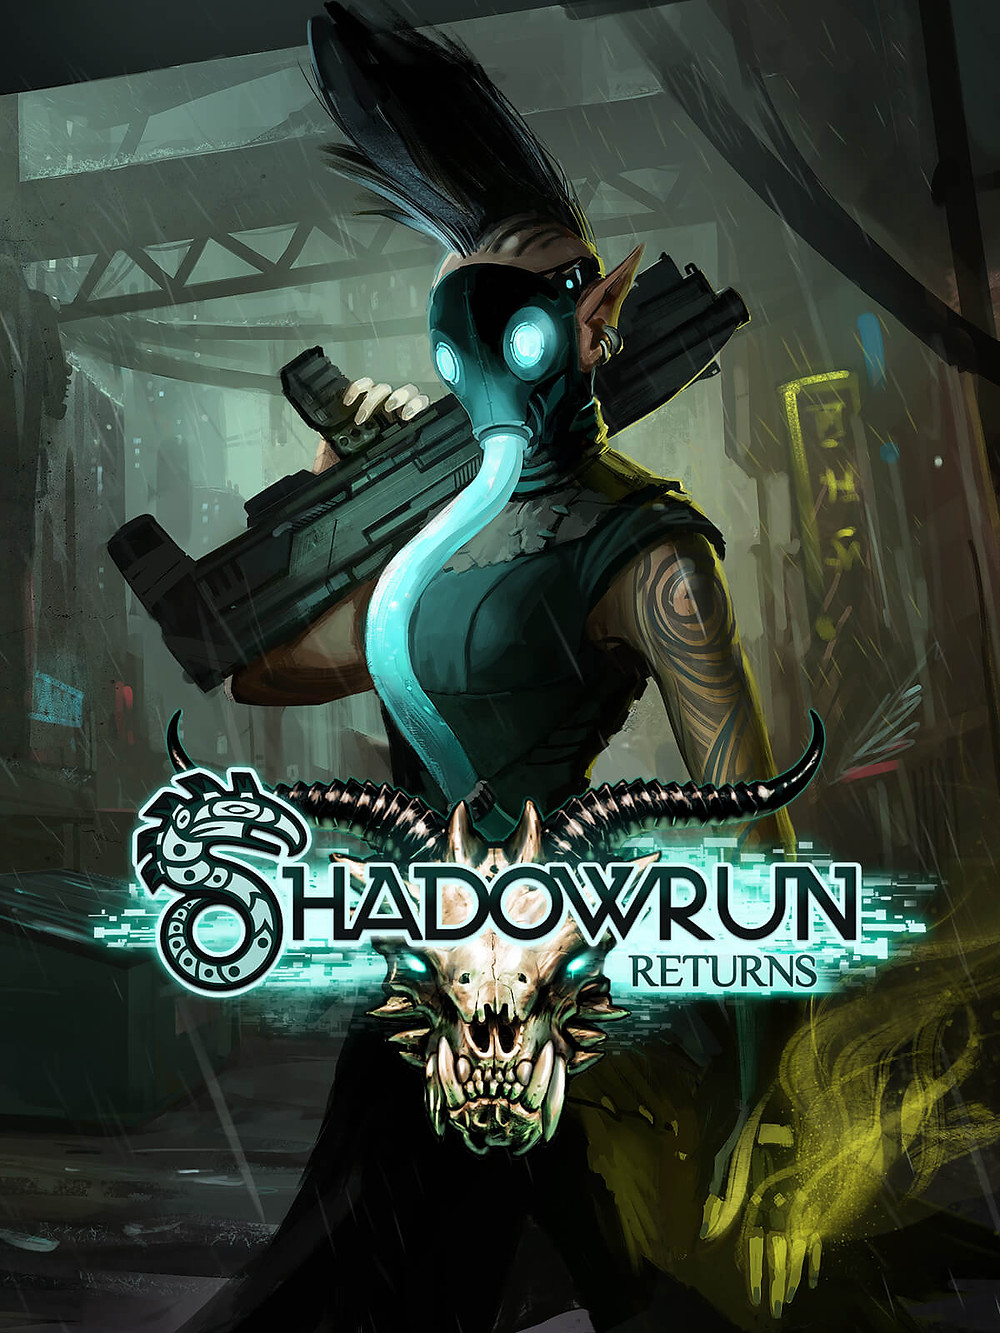 The cover of Shadowrun, a cyberpunk game